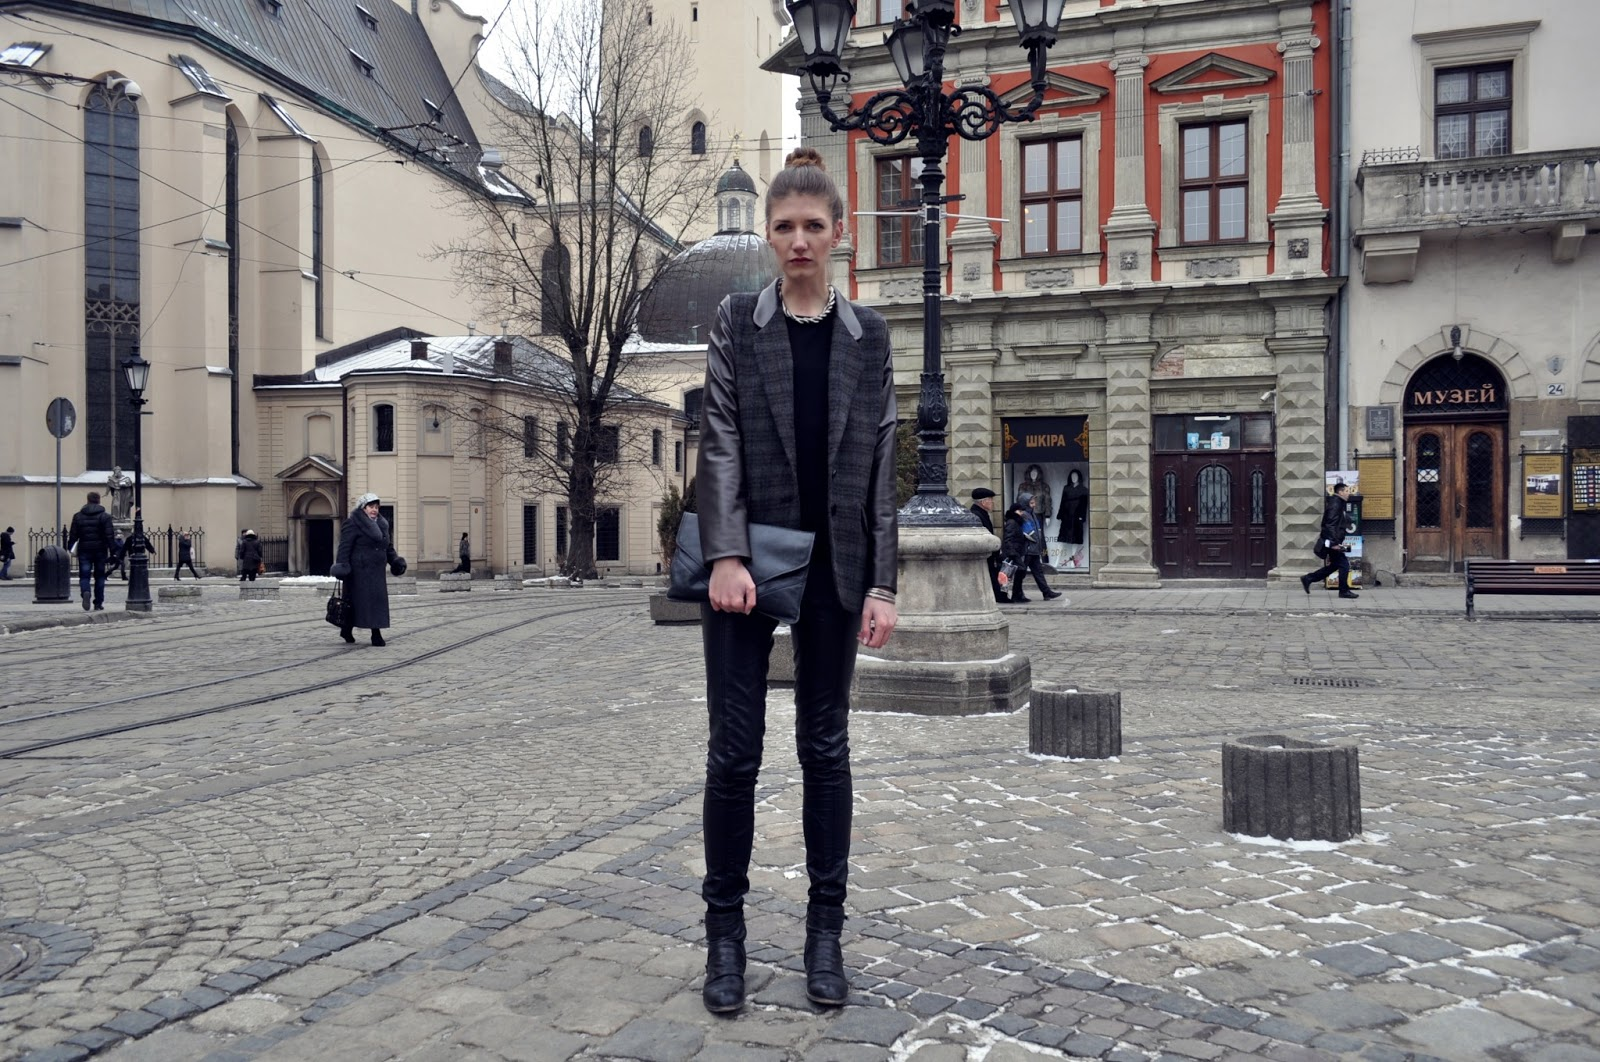 Yulia si lviv outfit 1 or another total leather and heres my first lviv outfit do you like my new jacket with brown leather sleeves and collar my mom made it for me i totally love it publicscrutiny Gallery